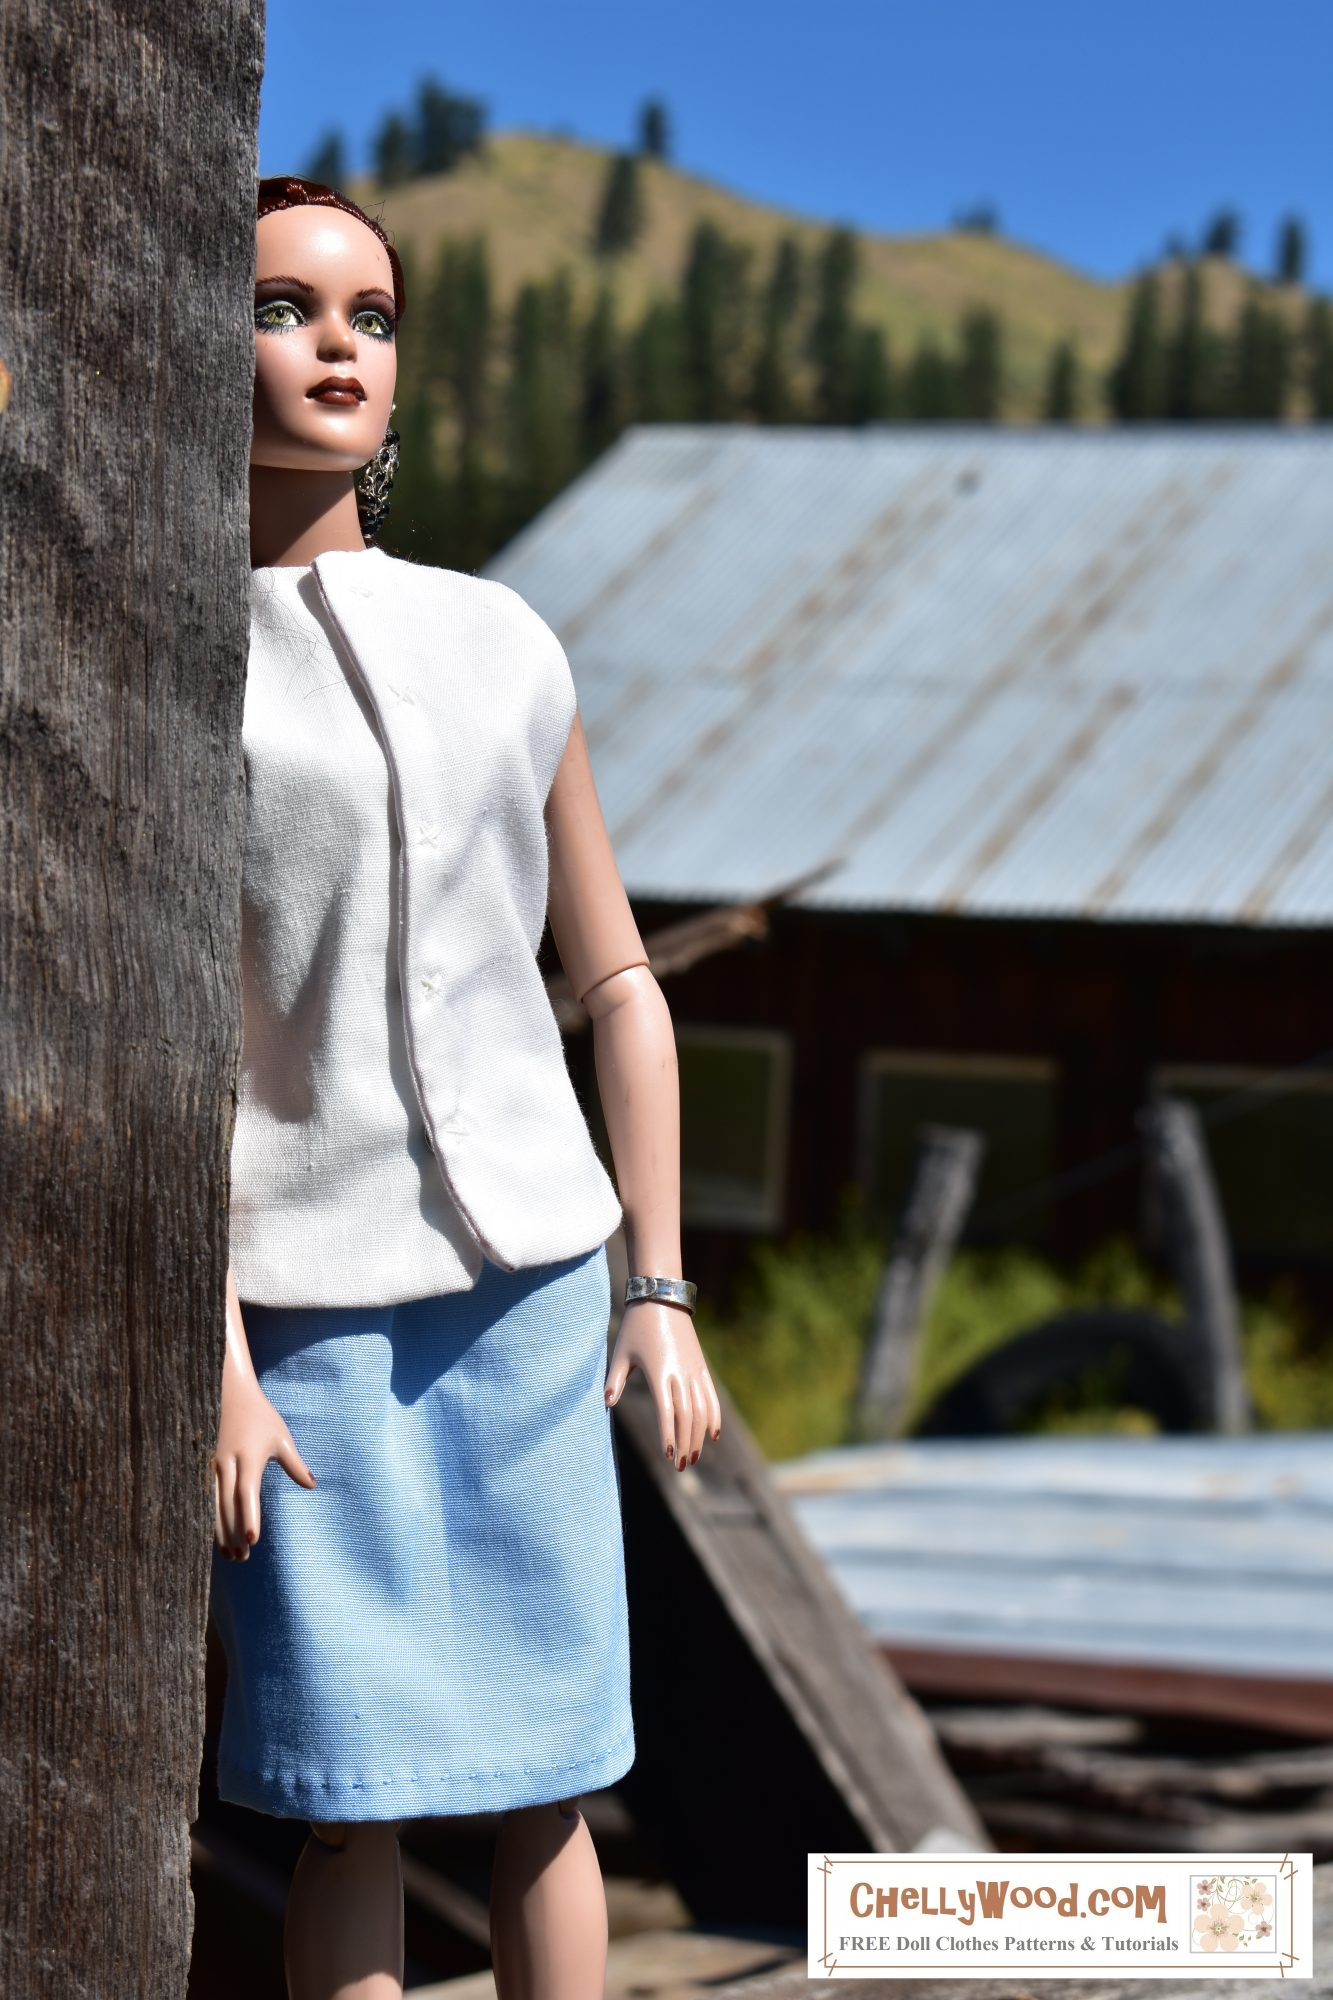 A Tonner doll with heavy eye makeup models a simple white sleeveless summer shirt and a light blue business skirt. The setting behind her shows barns in a grassy field with pine trees behind her.